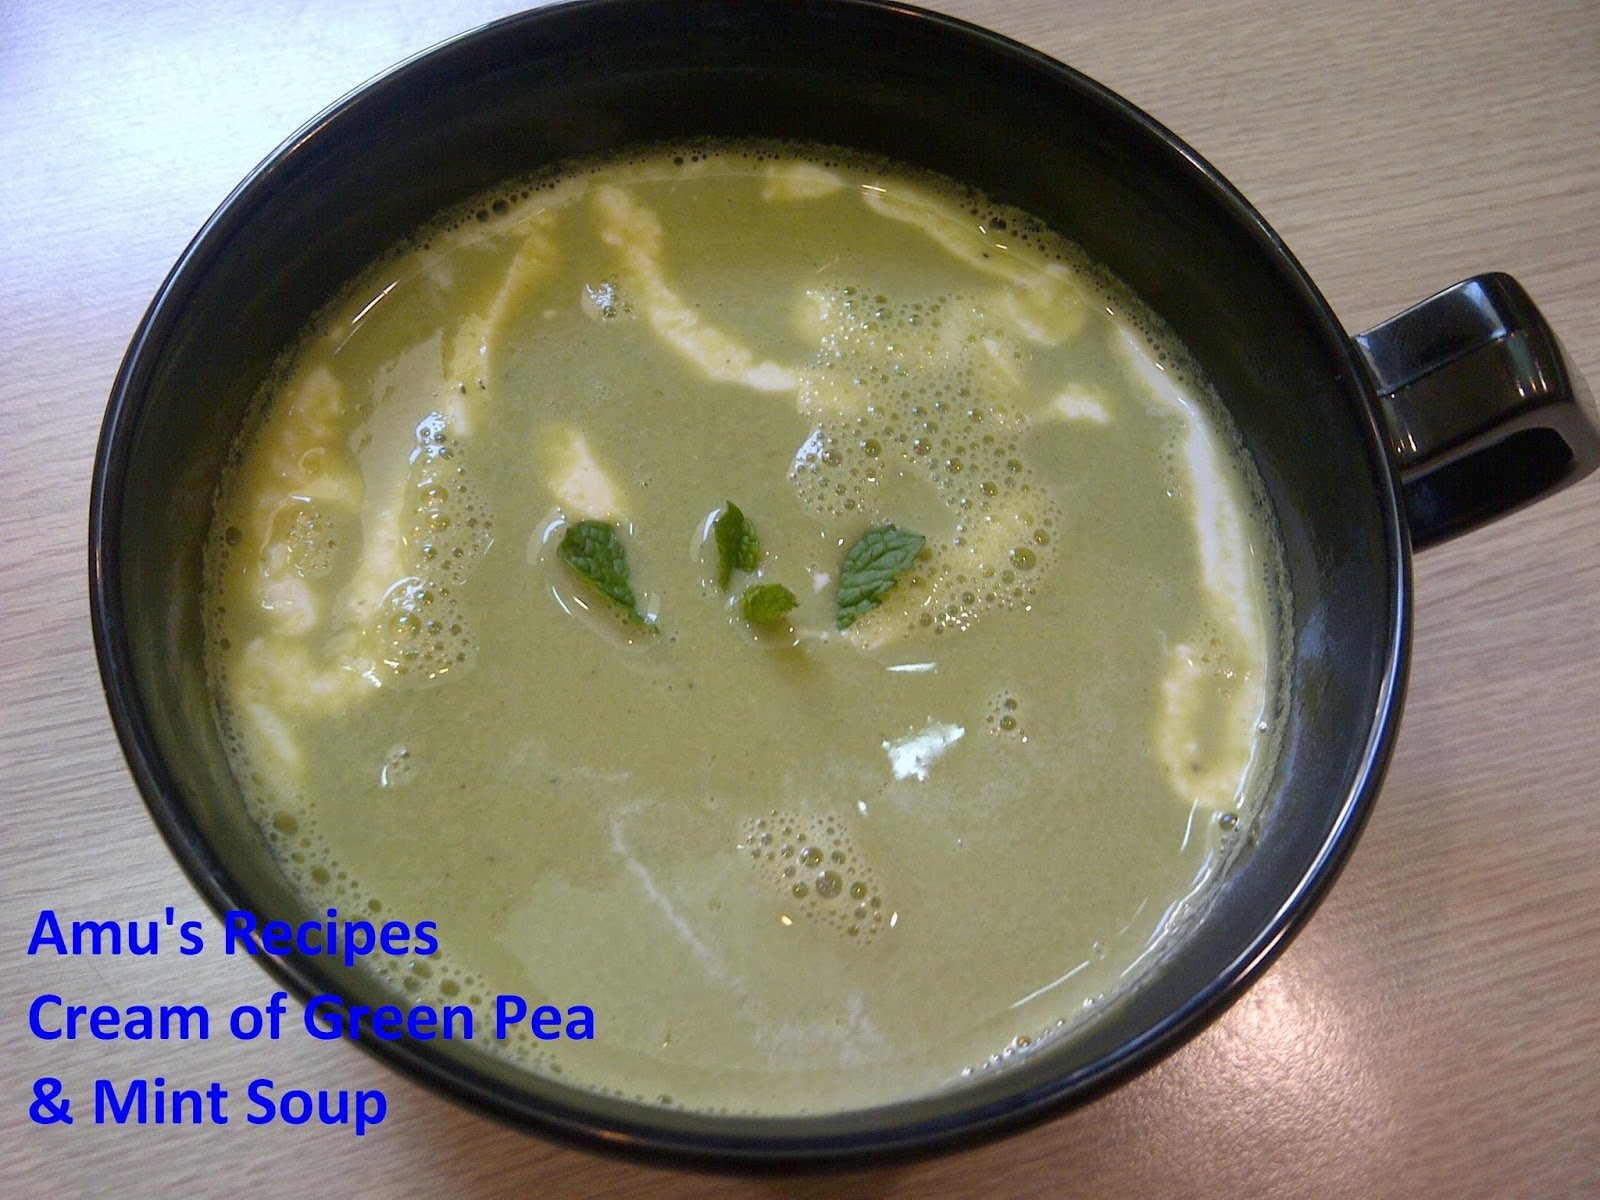 AMU'S RECIPES: Cream of Green Pea and Mint Soup